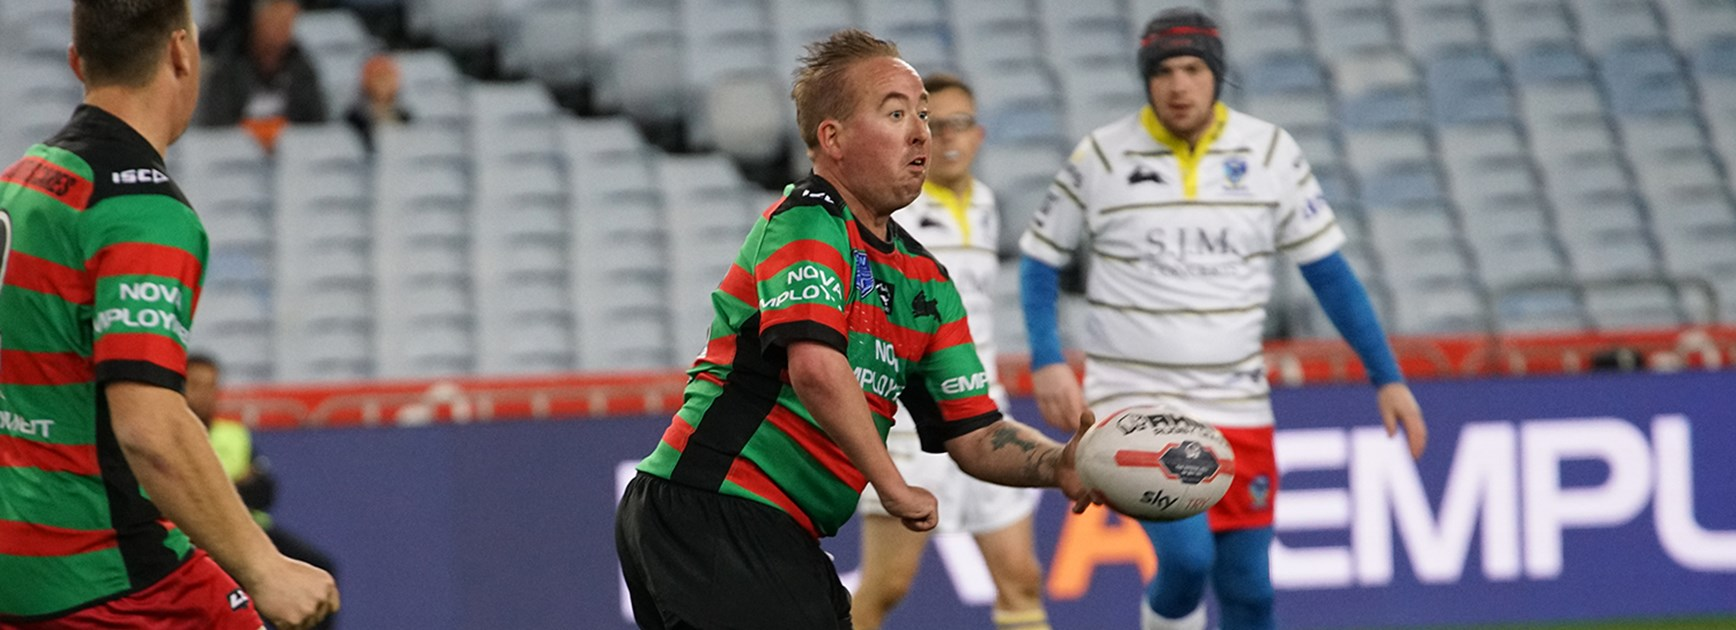 Souths players star in first game of Physical Disability Championship